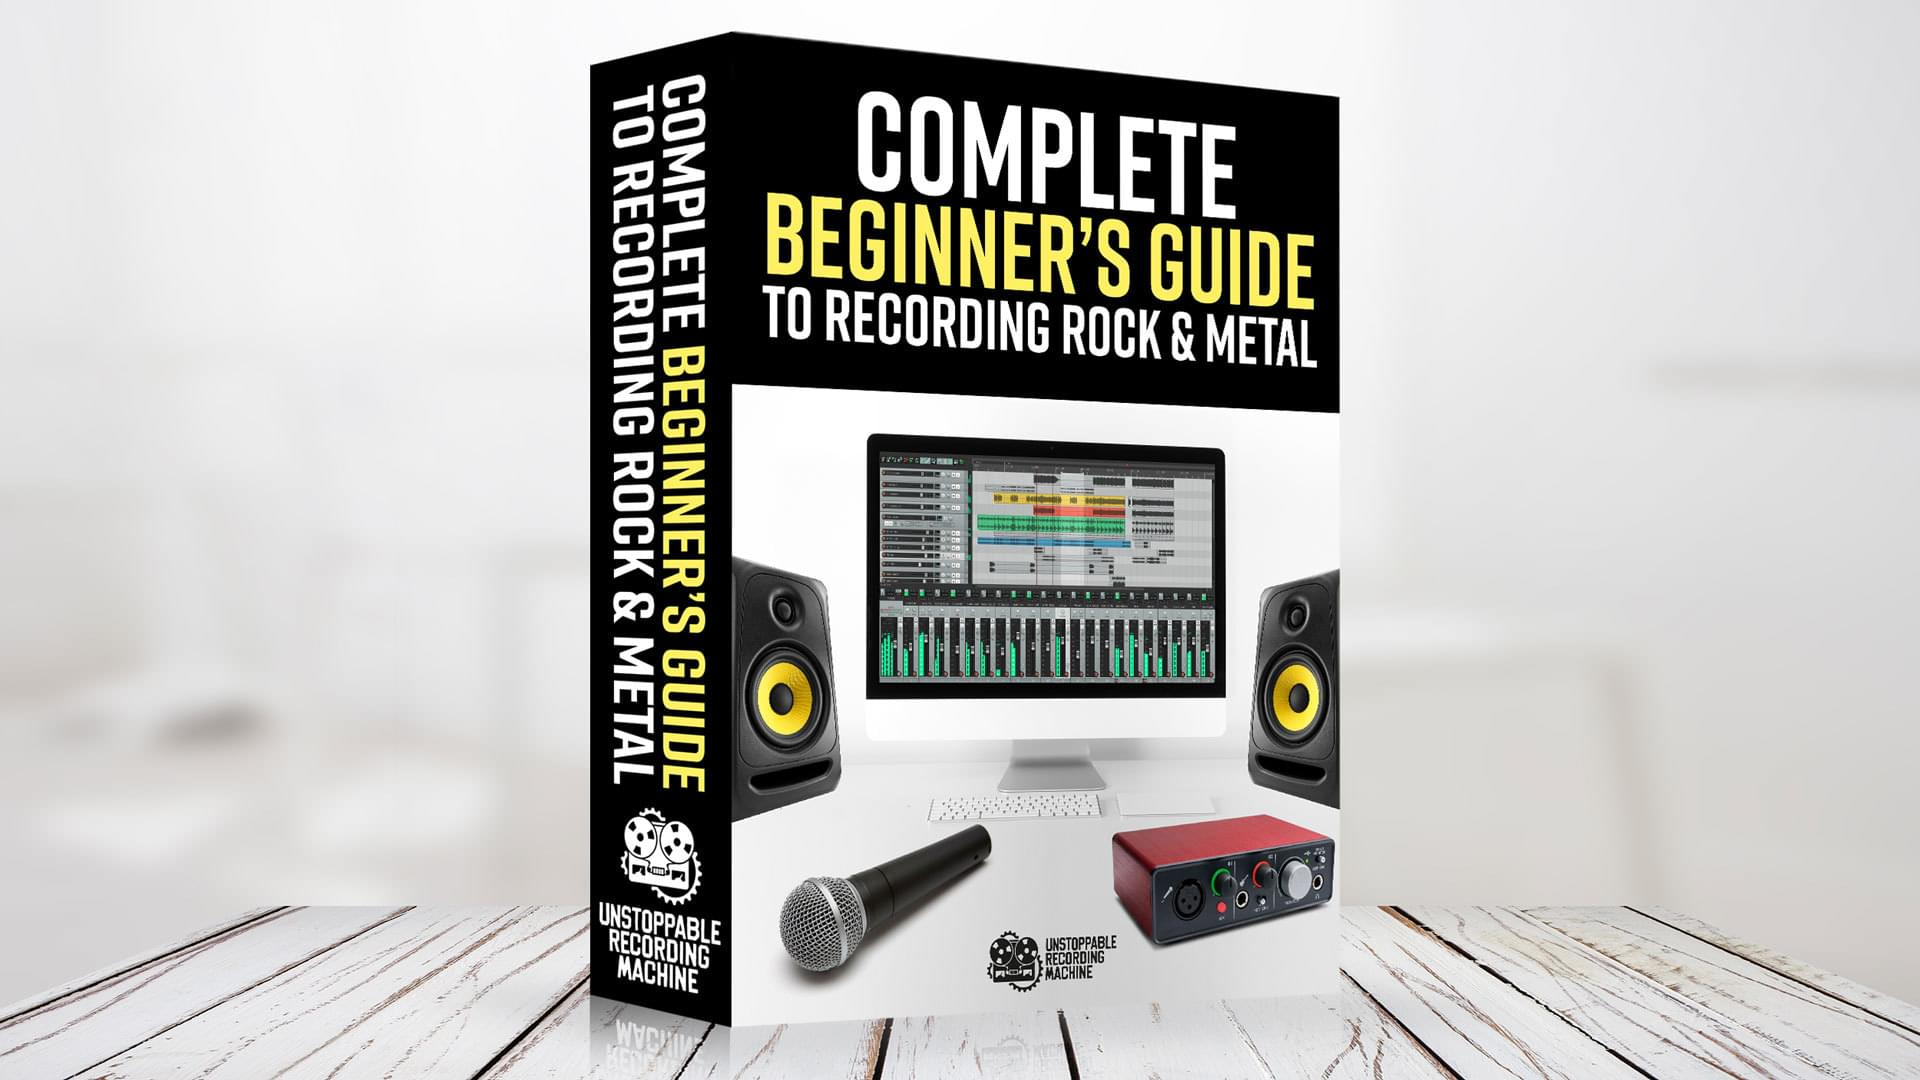 The Complete Beginner's Guide To Recording Rock & Metal